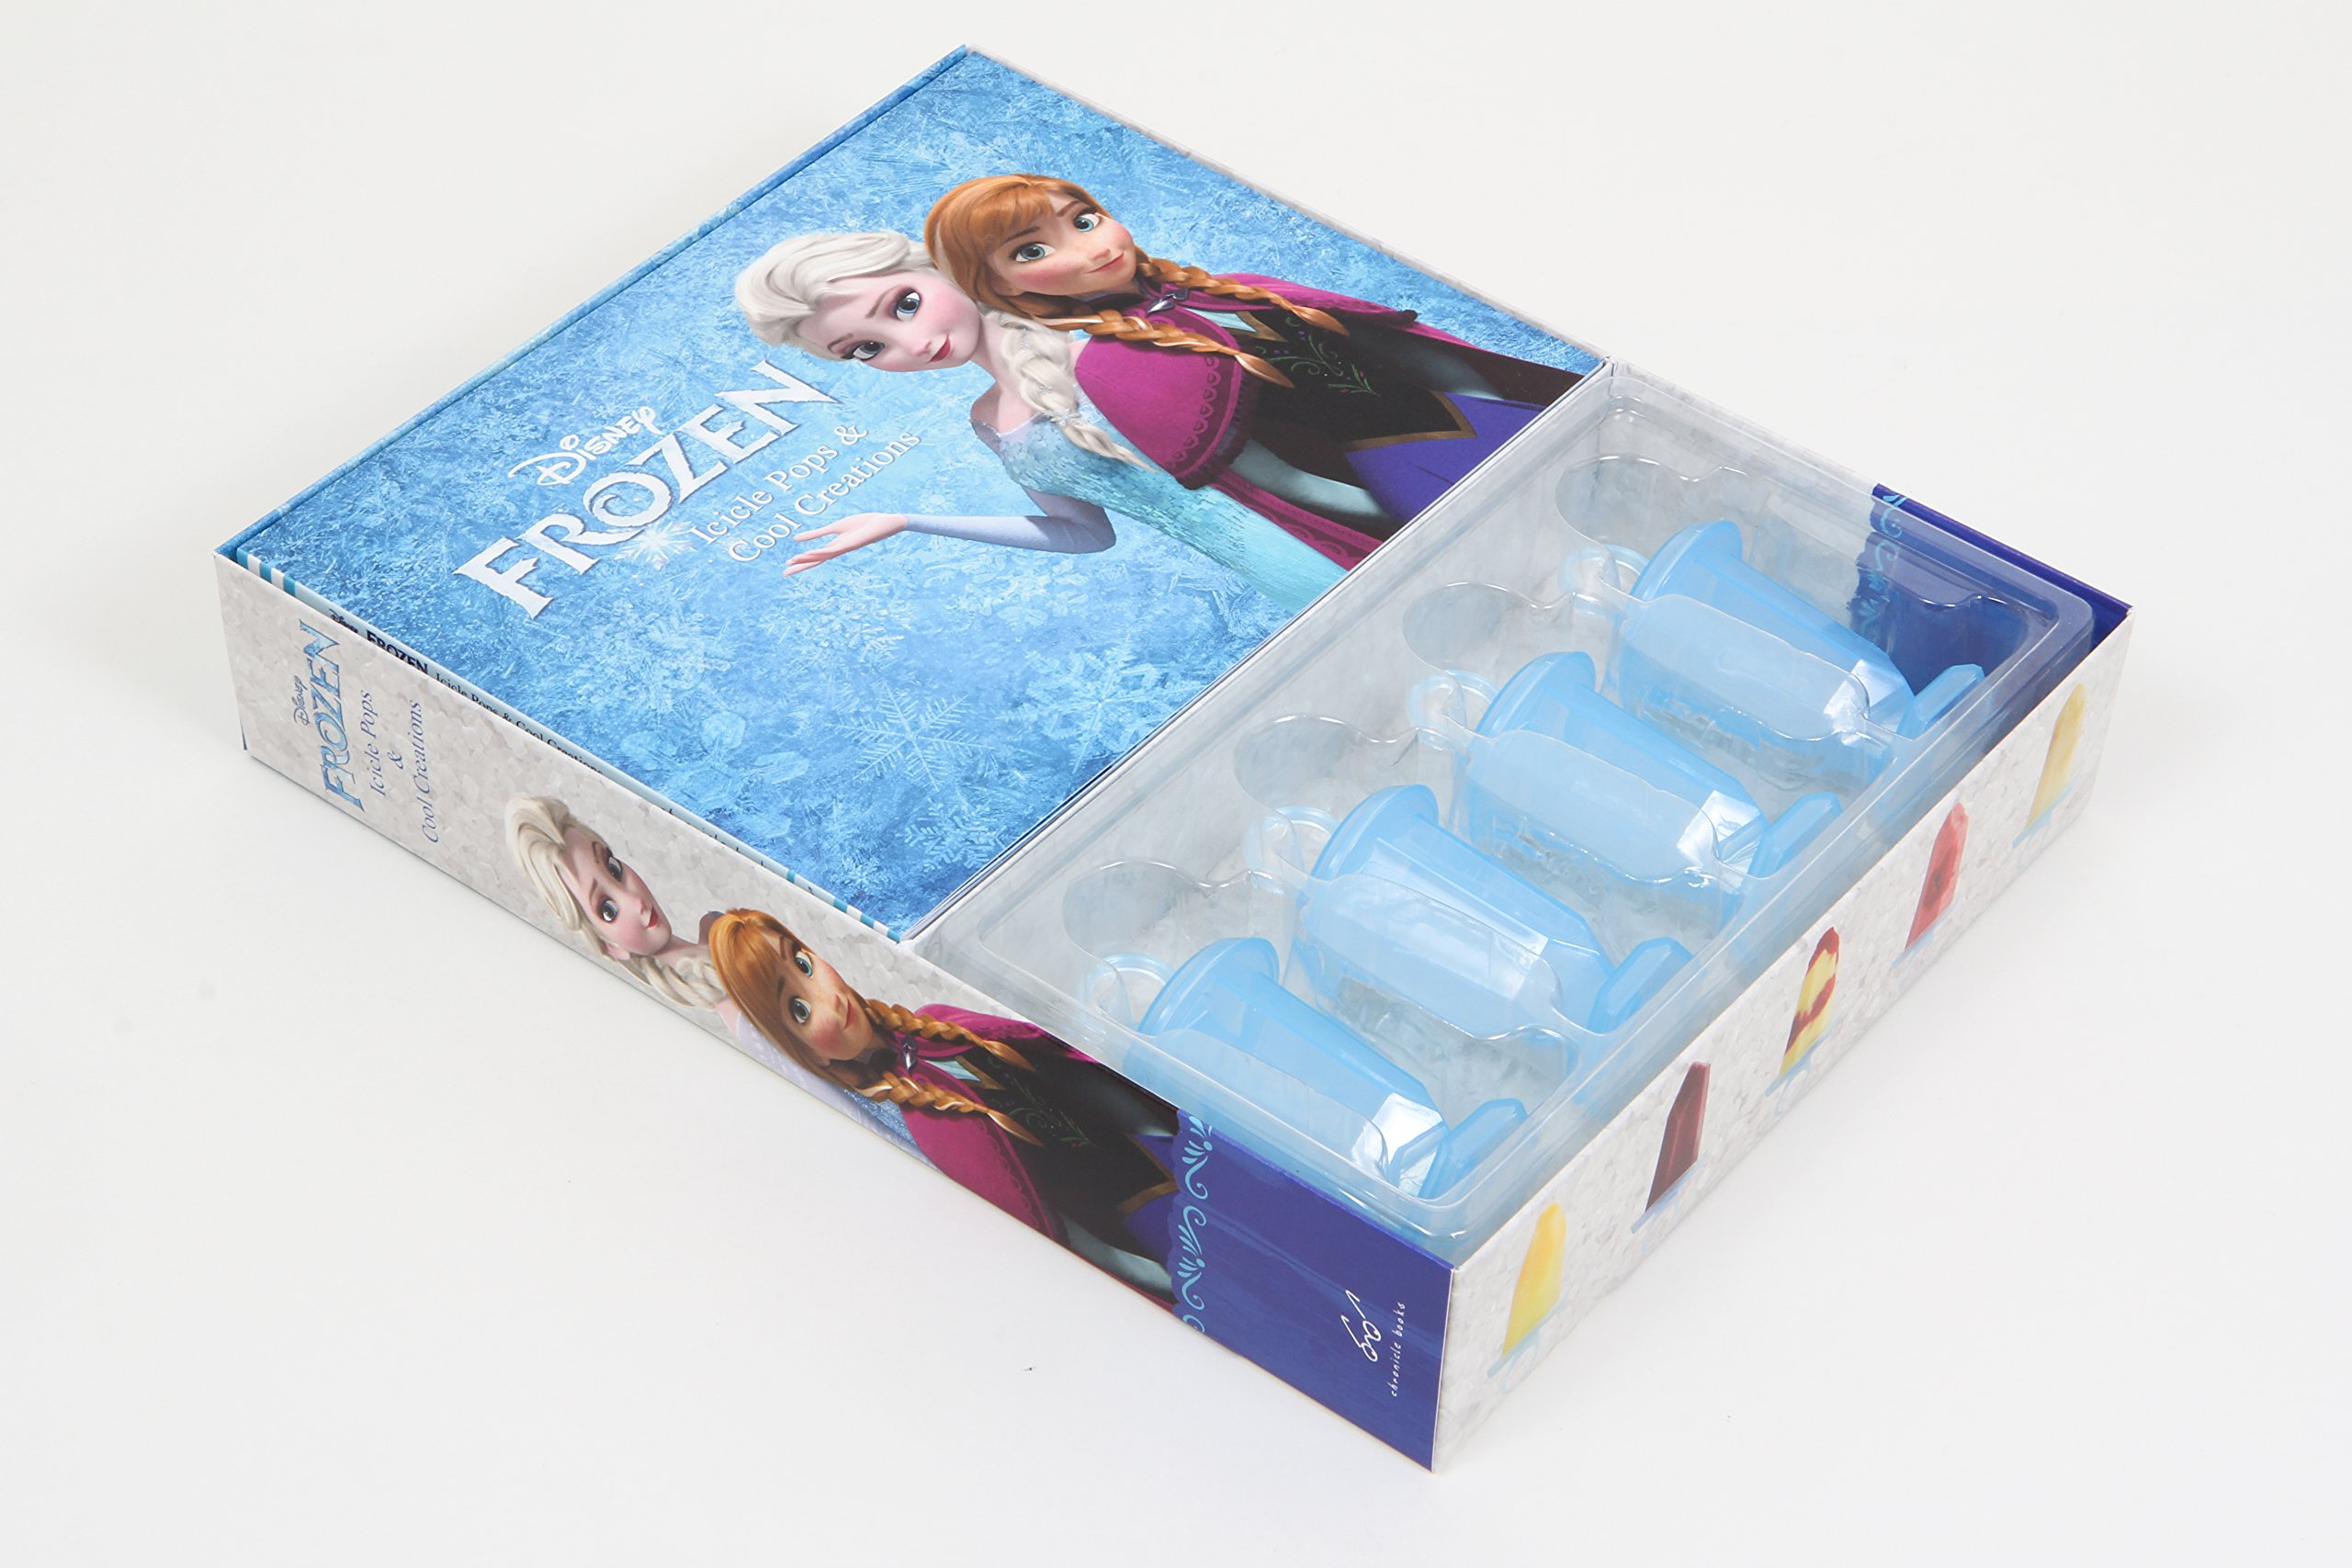 LA REINE DES NEIGES -  ICICLE POPS & COOL CREATIONS -  PRINCESSES DISNEY